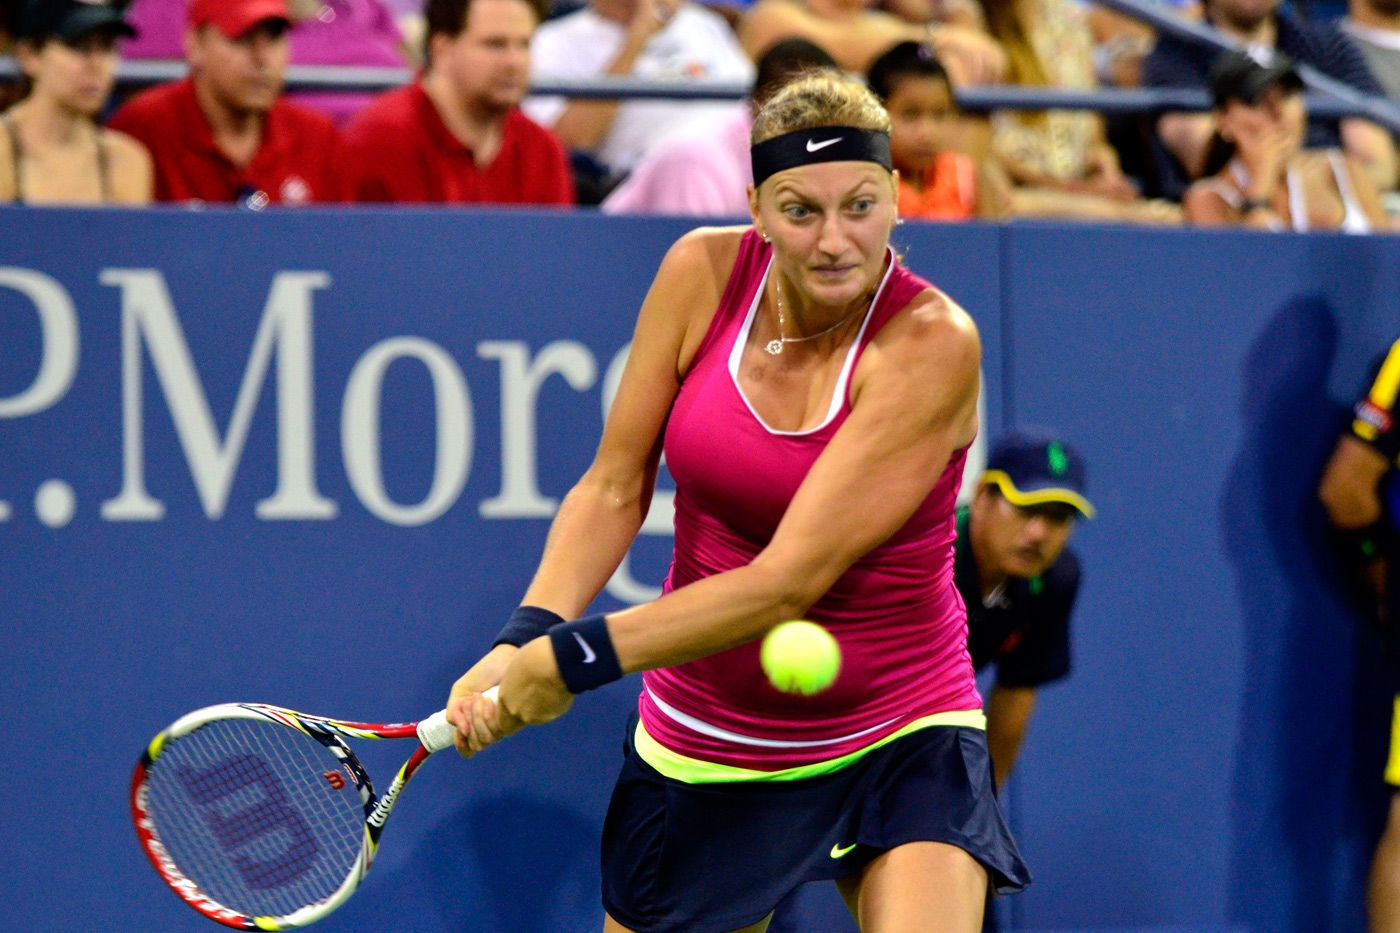 Petra Kvitova Cze 5 Was Defeated By Marion Bartoli In The Fourth Round Of The 2012 Us Open Don Starr Usta Marion Bartoli Kvitova Petra Starr